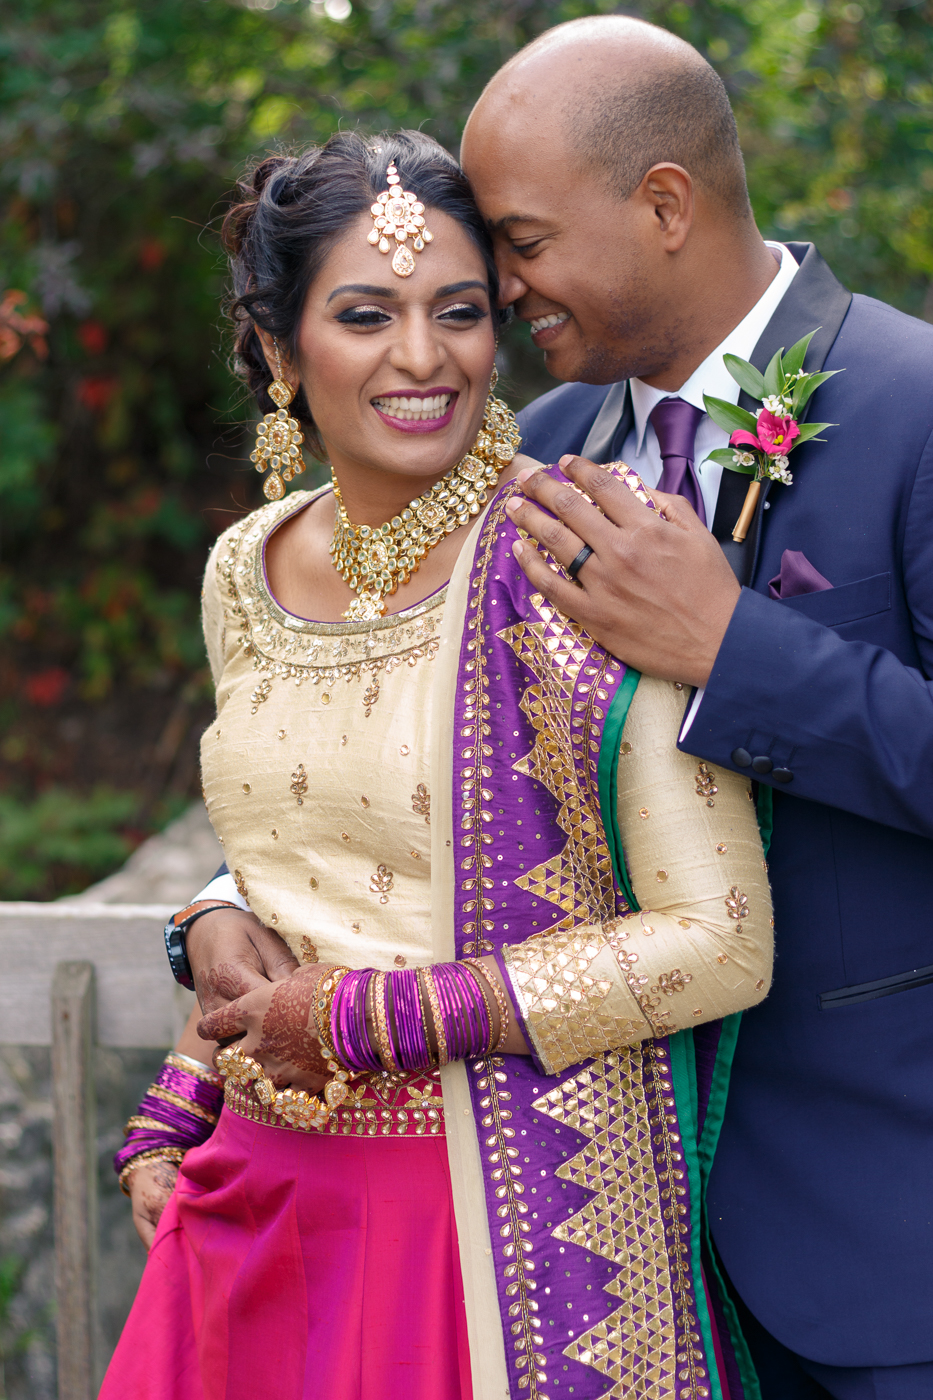 Happy South Asian bride and groom with groom's hand on bride's shoulder.